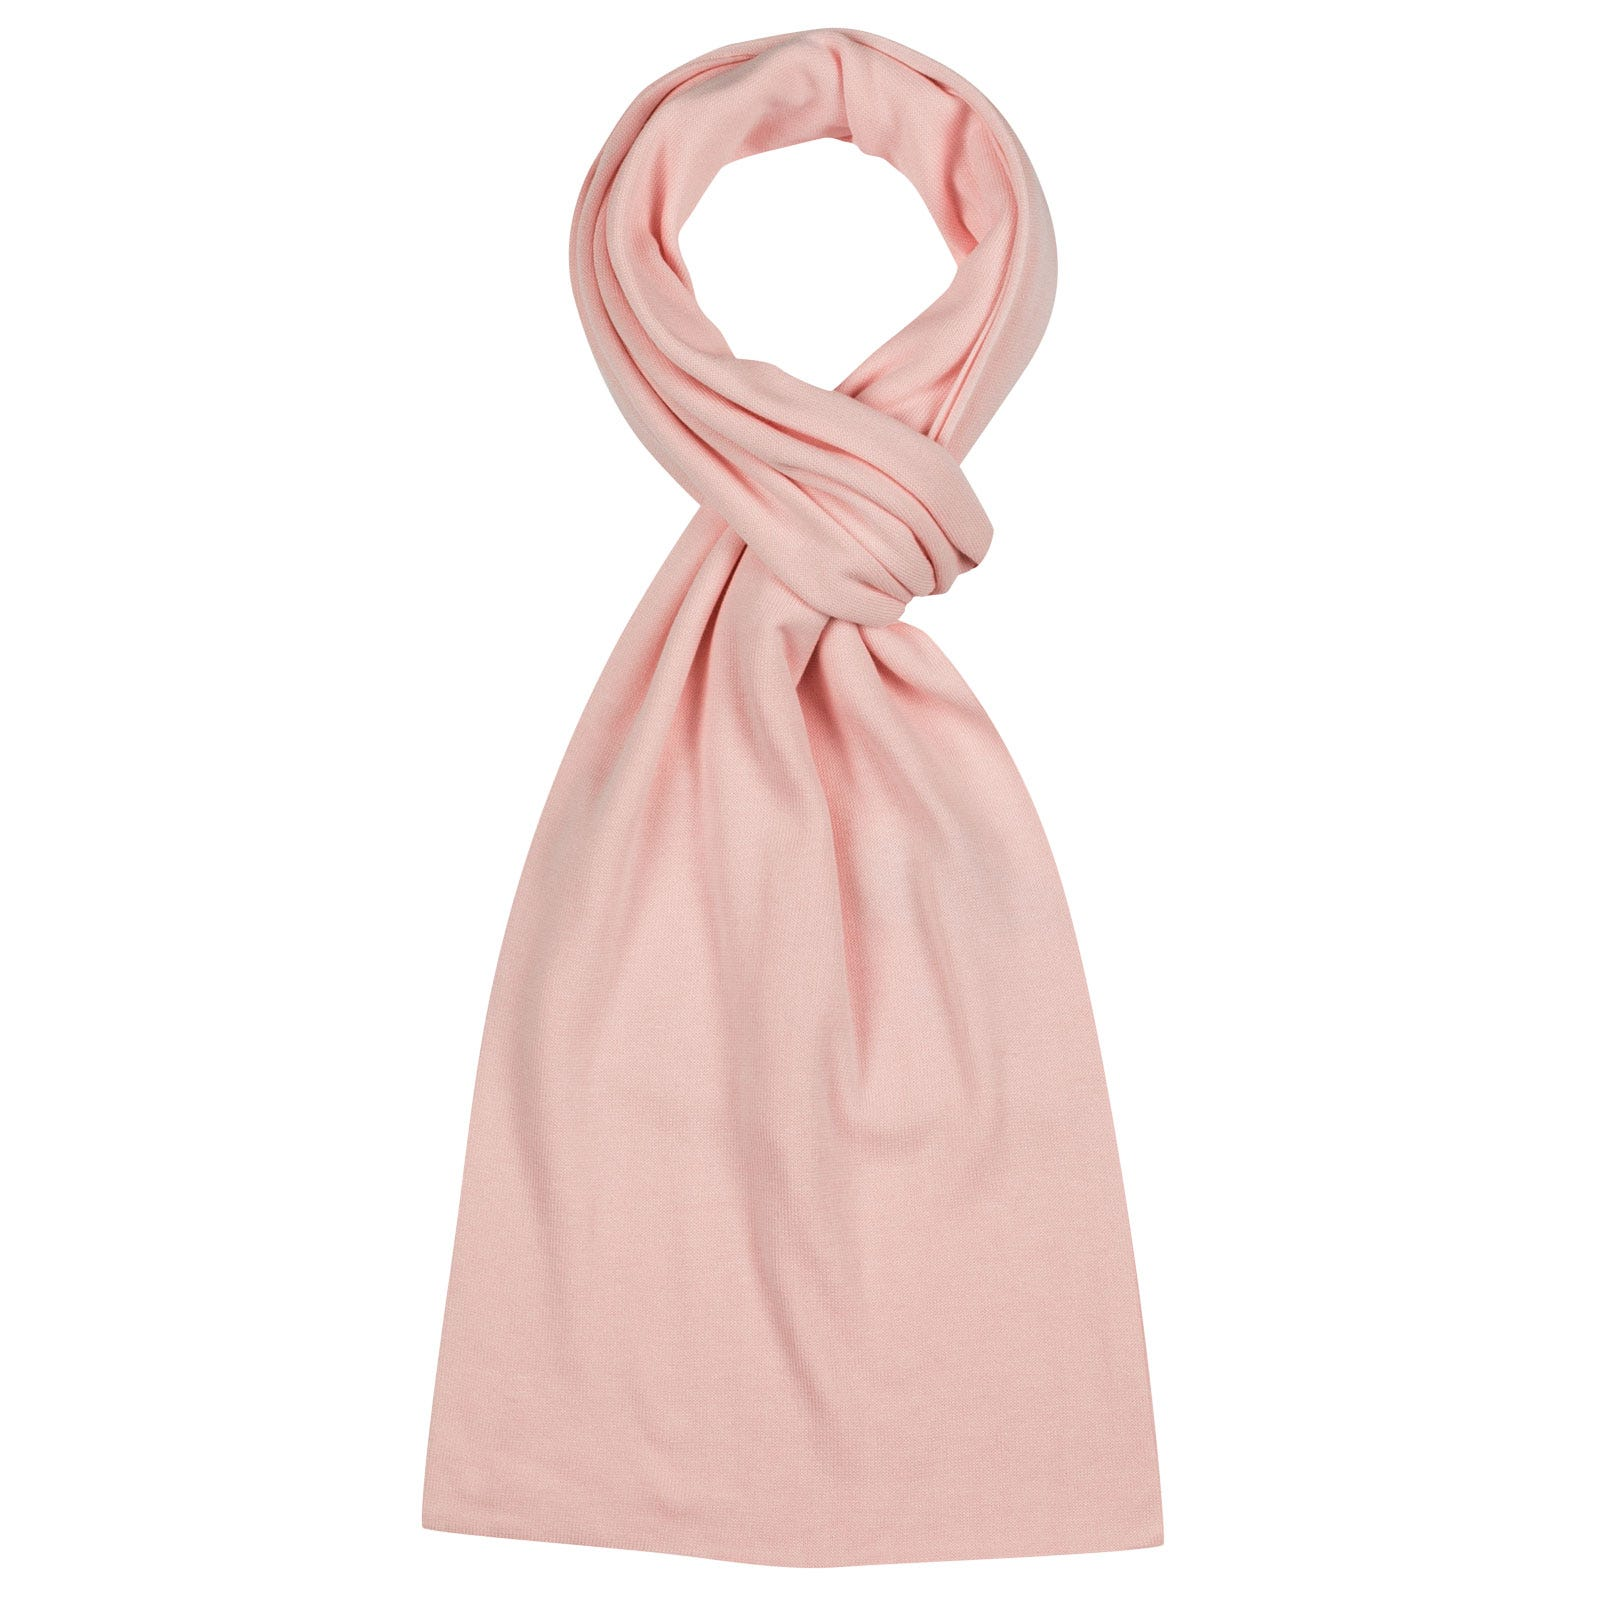 John Smedley glide John Smedley Sea Island Cotton Scarf in Dress-Shirt